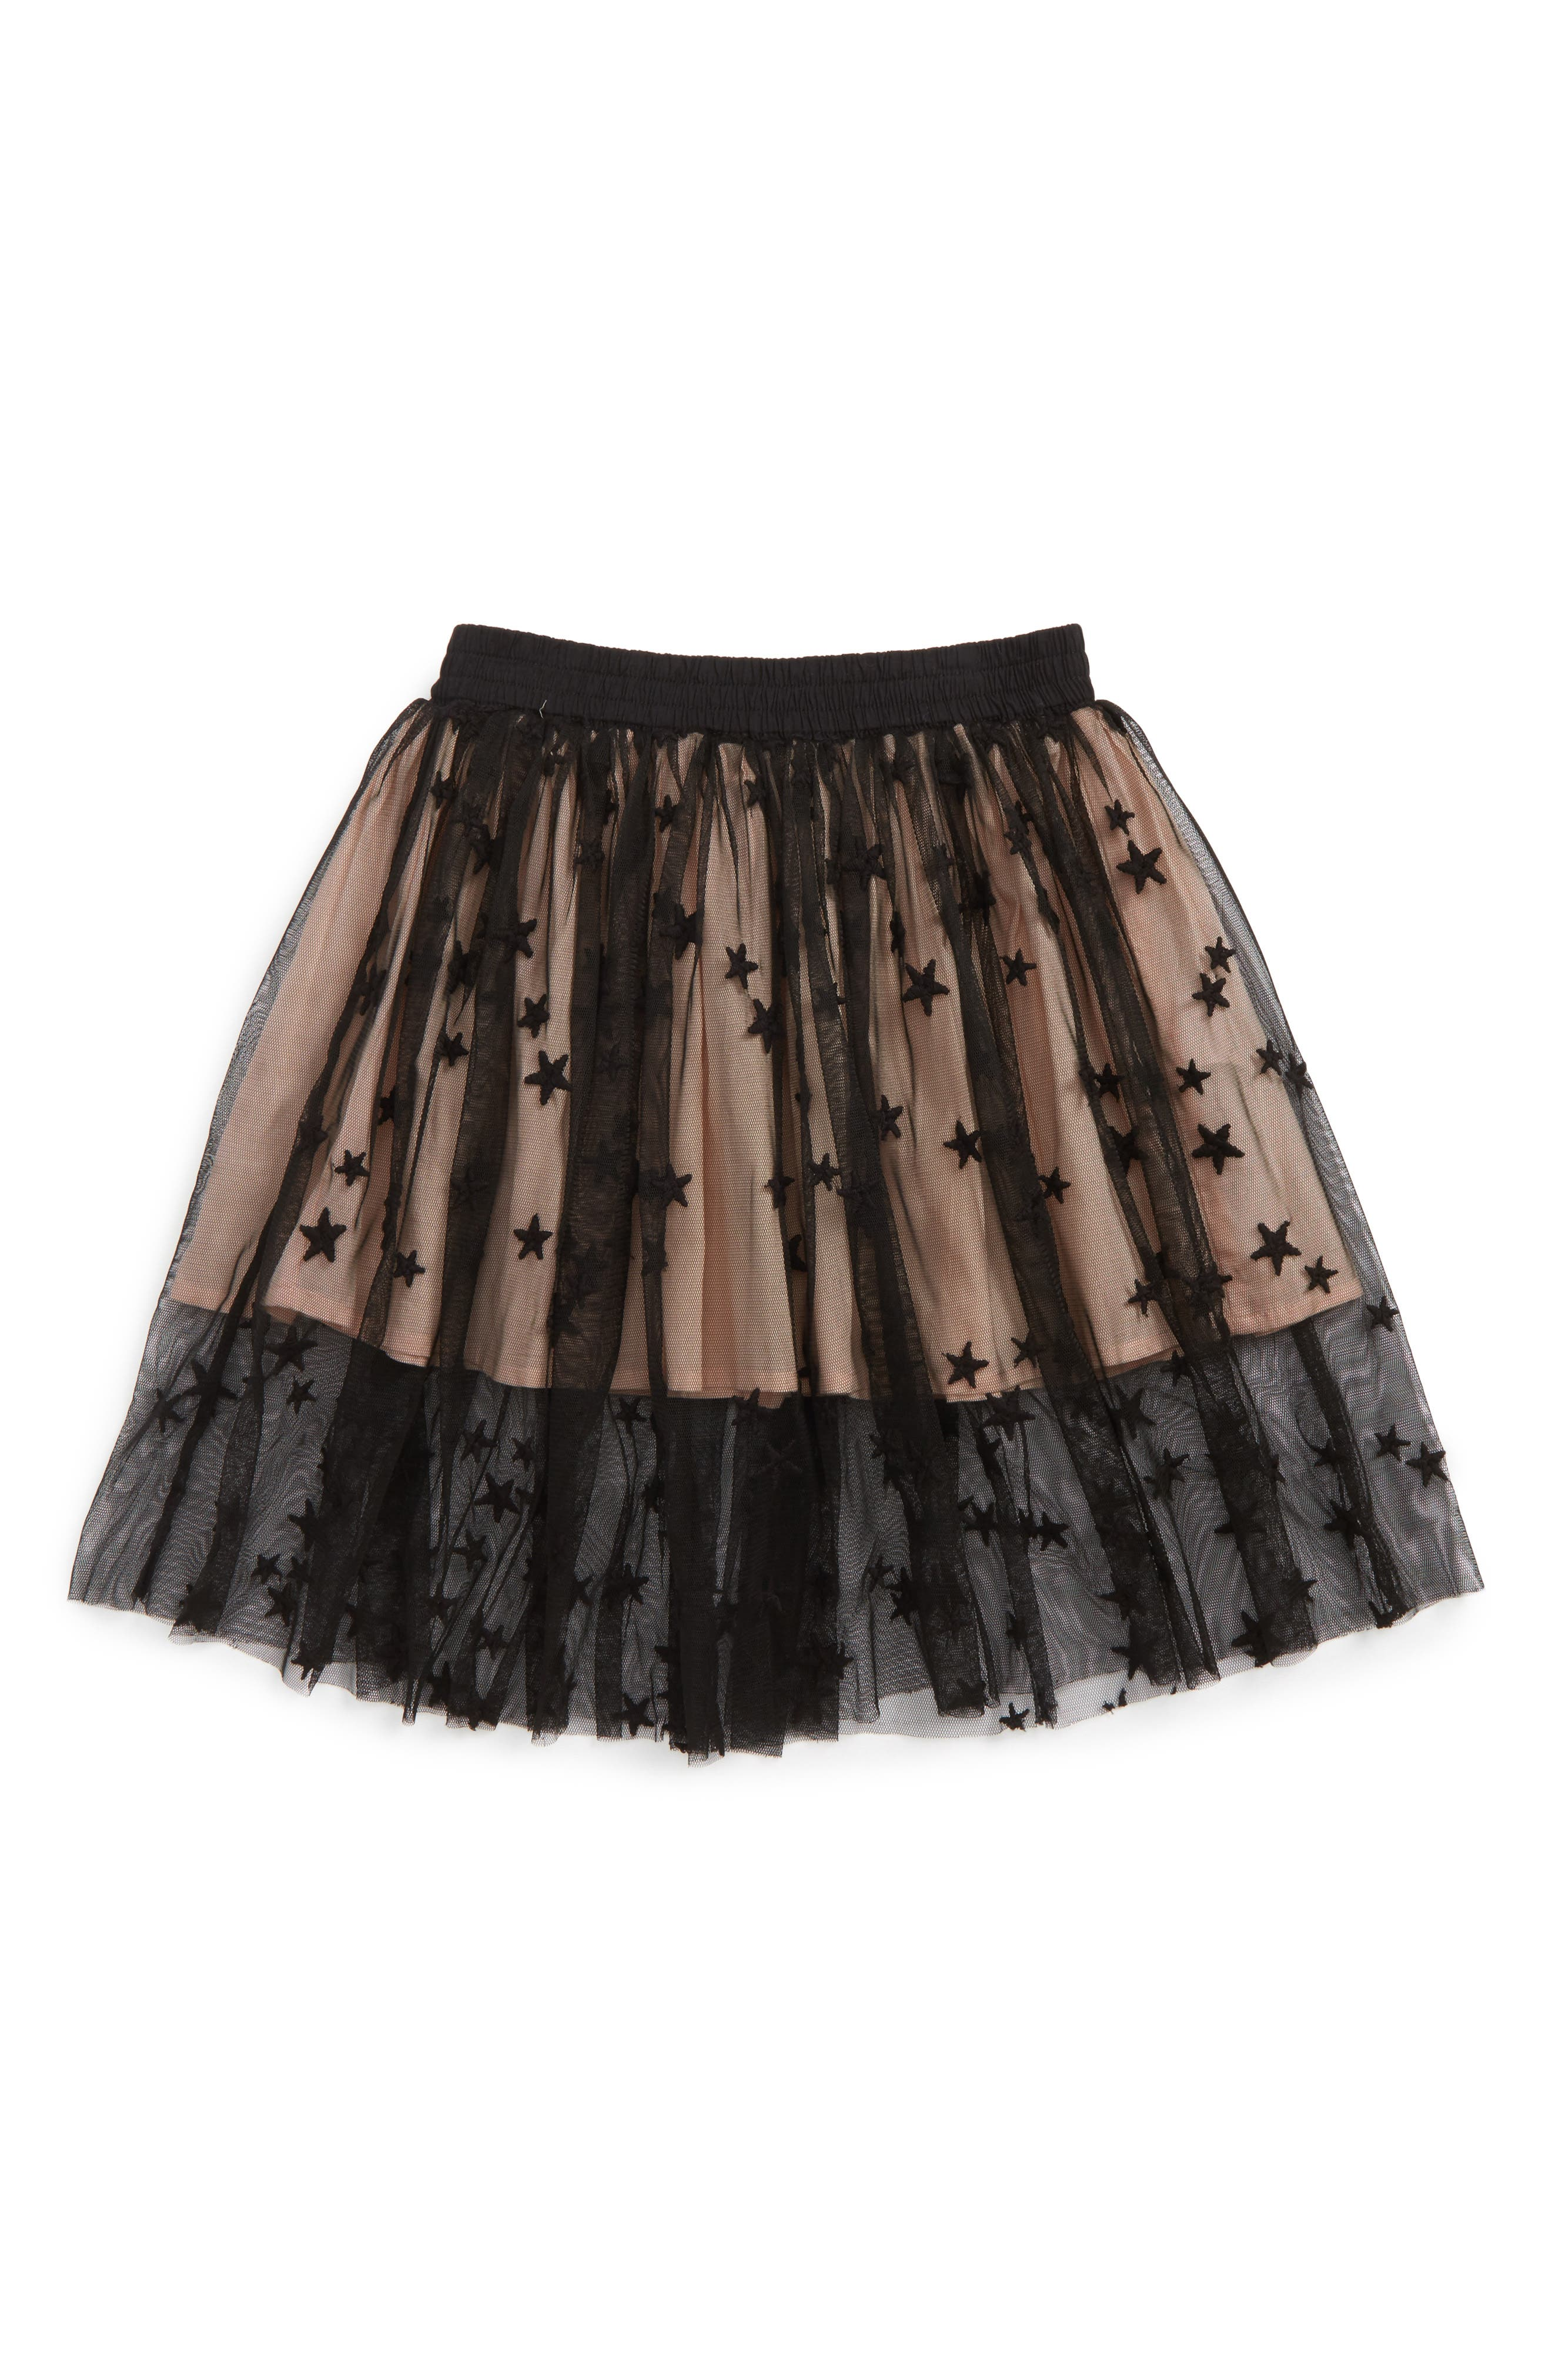 Main Image - Stella McCartney Kids Amalie Star Tulle Skirt (Toddler Girls, Little Girls & Big Girls)